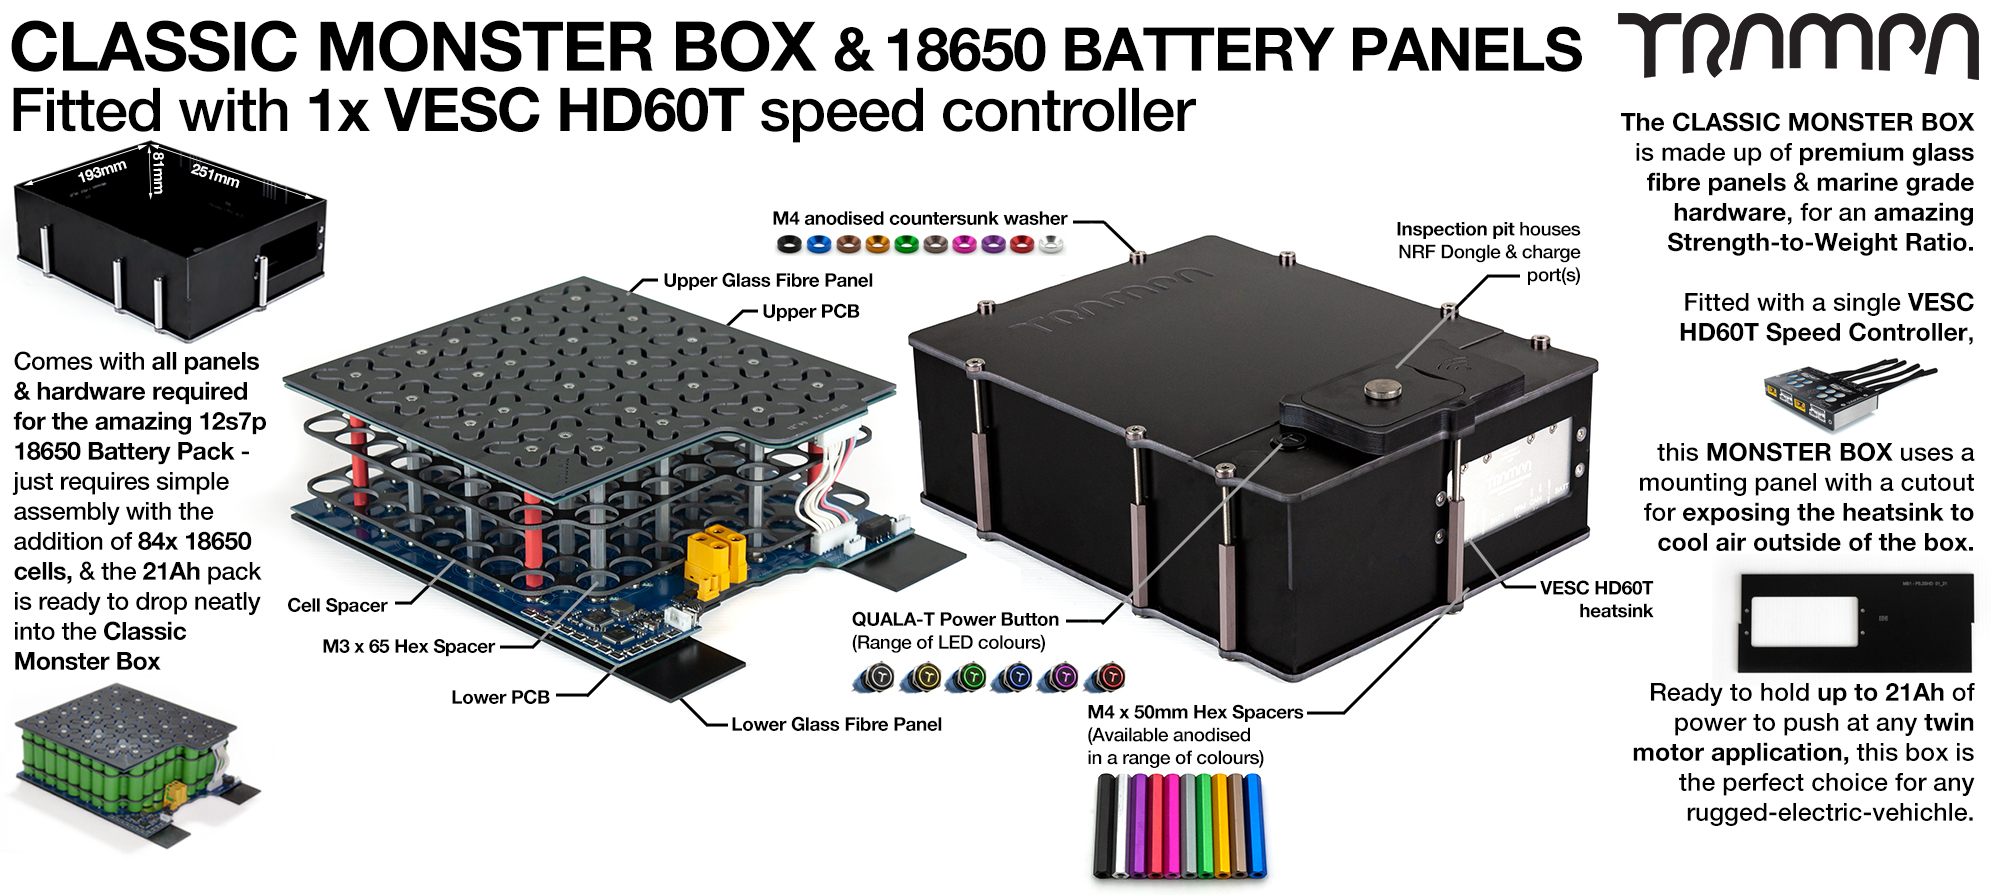 MONSTER Box MkIV - with 18650 PCB Pack & 1x VESC HD-60Twin - NO CELLS PCB based Battery Pack with Integrated Battery Management System (BMS) - NO Cells